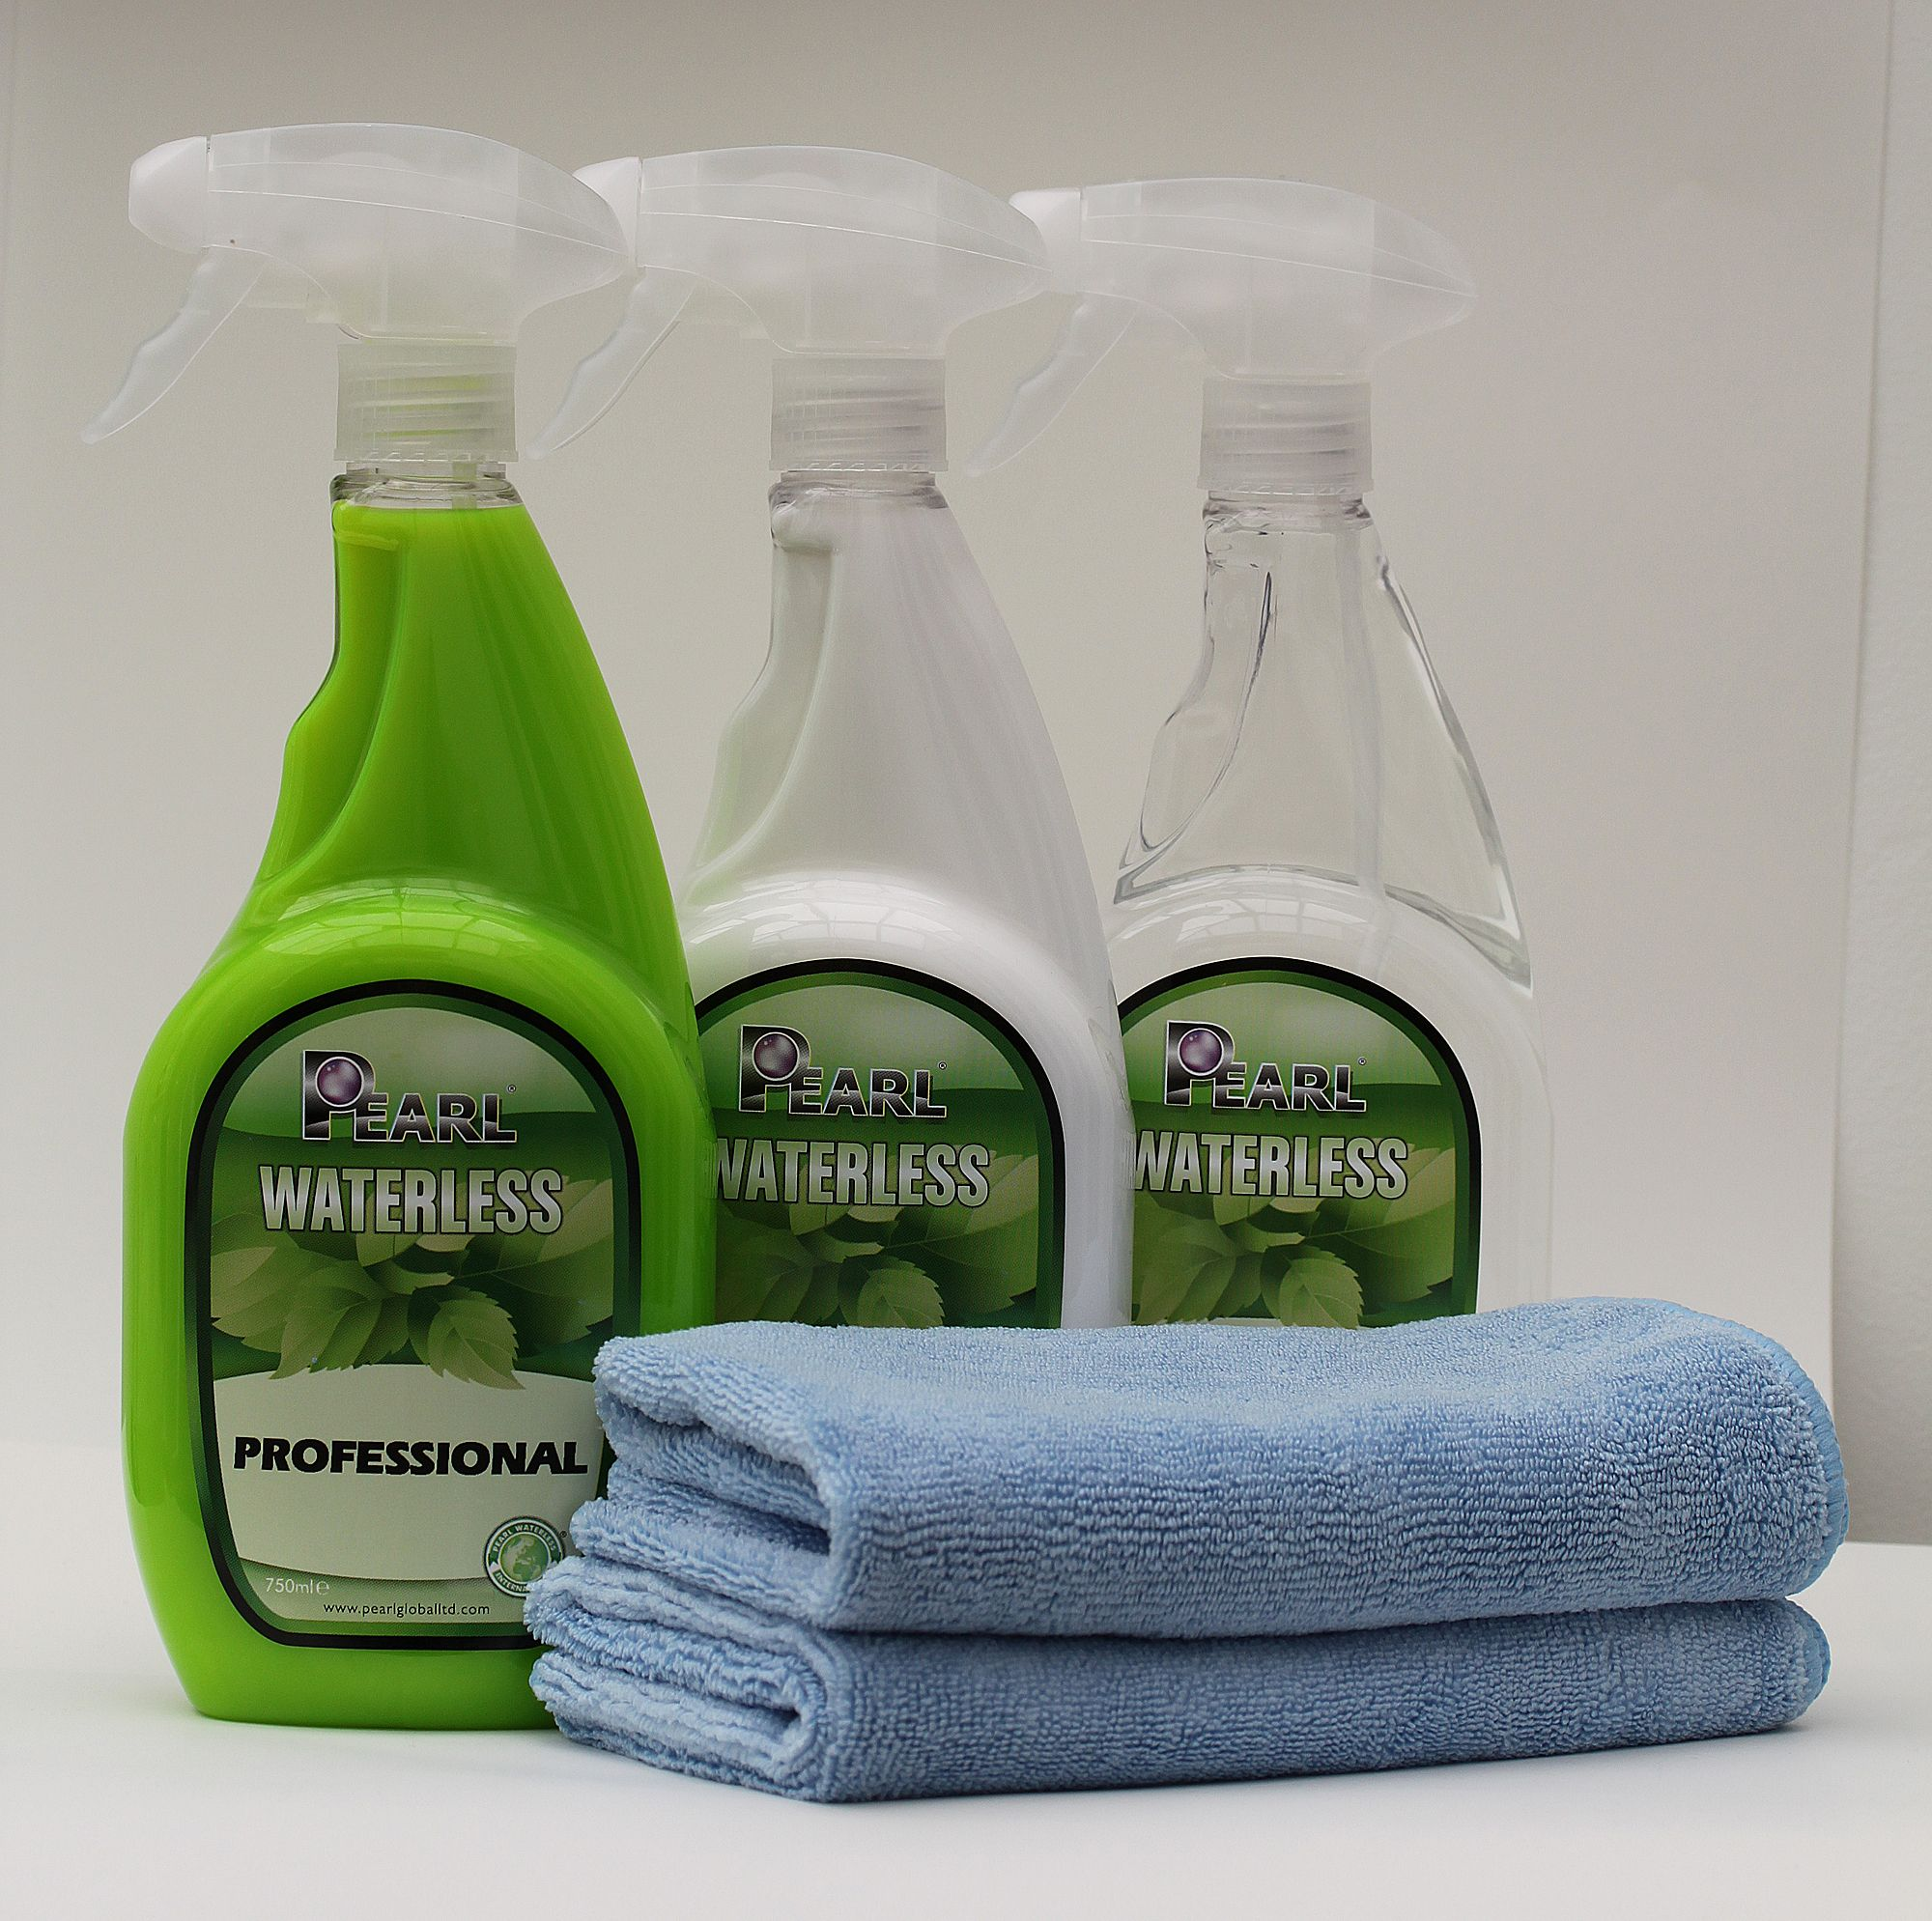 Ecofriendly green waterless car wash products and